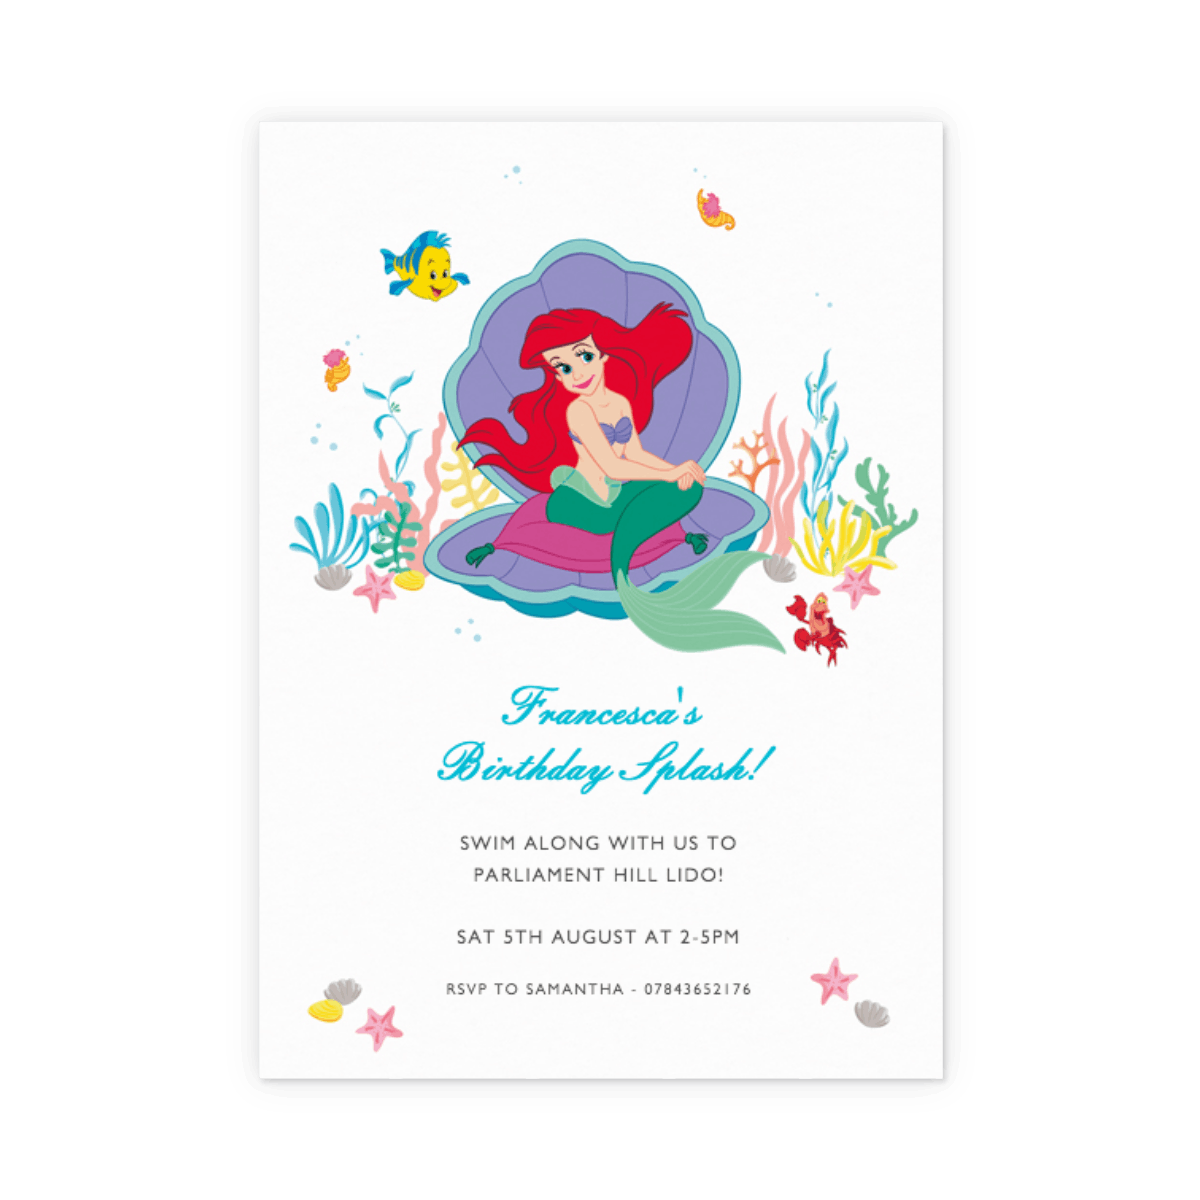 Https%3a%2f%2fwww.papier.com%2fproduct image%2f35291%2f4%2fthe little mermaid 8817 front 1552335418.png?ixlib=rb 1.1